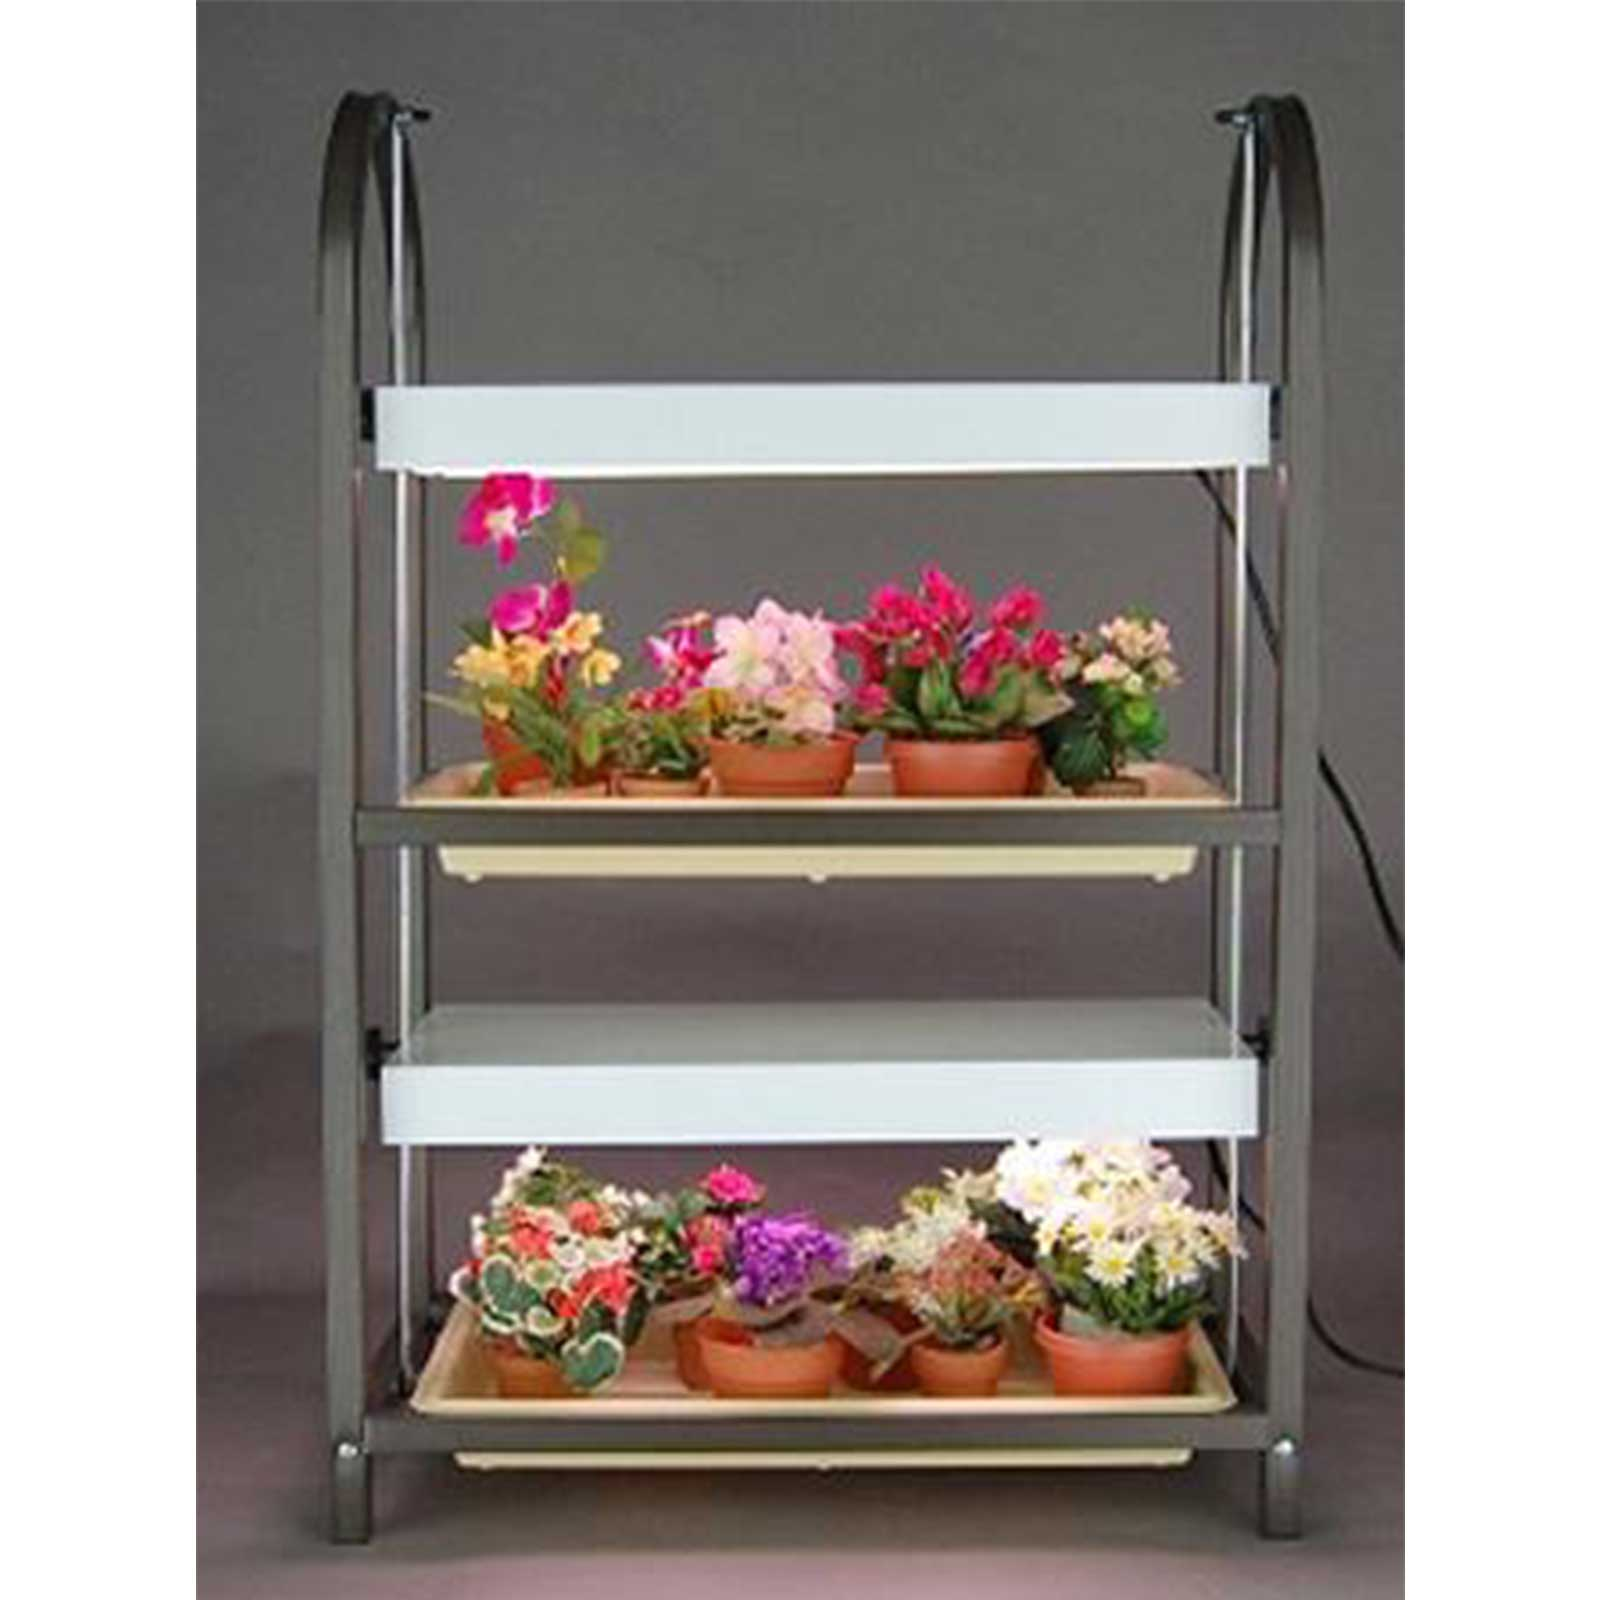 This wheatgrass growing stand will hold two trays of wheatgrass, microgreens, or whatever you are growing. It has two built in wide spectrum grow lights and two drip trays. Available in chrome and brown. Perfect for growing and rotation two trays of wheatgrass at a time.